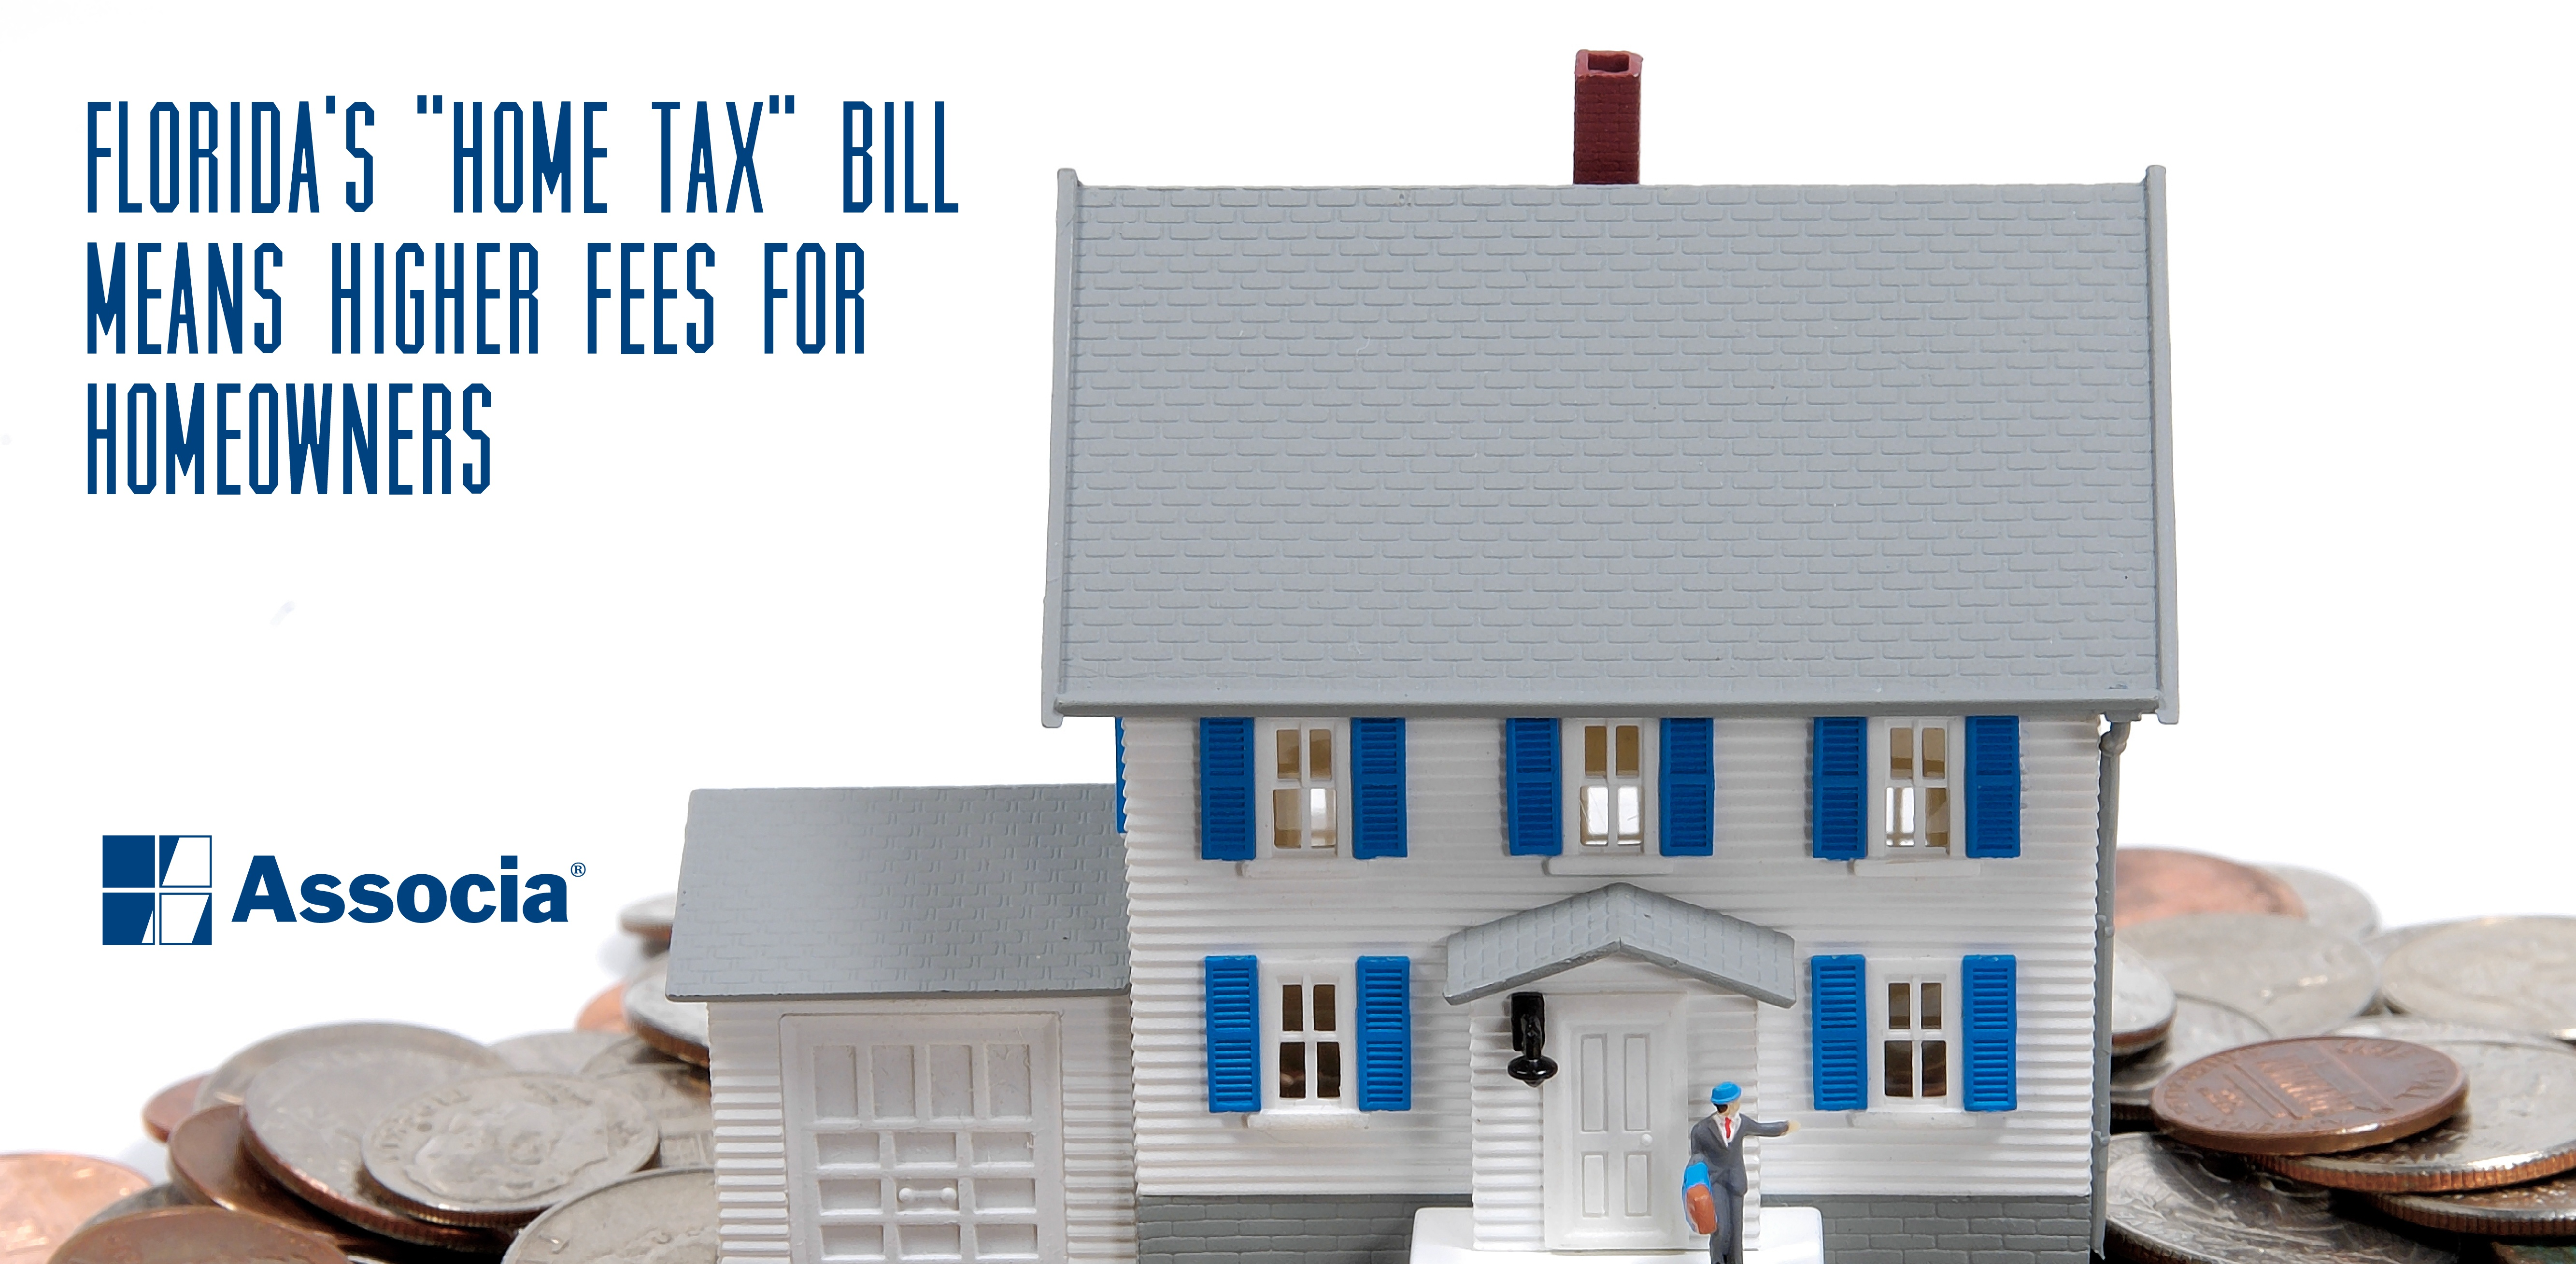 Floridas_Home_Tax_Bill-01.jpg